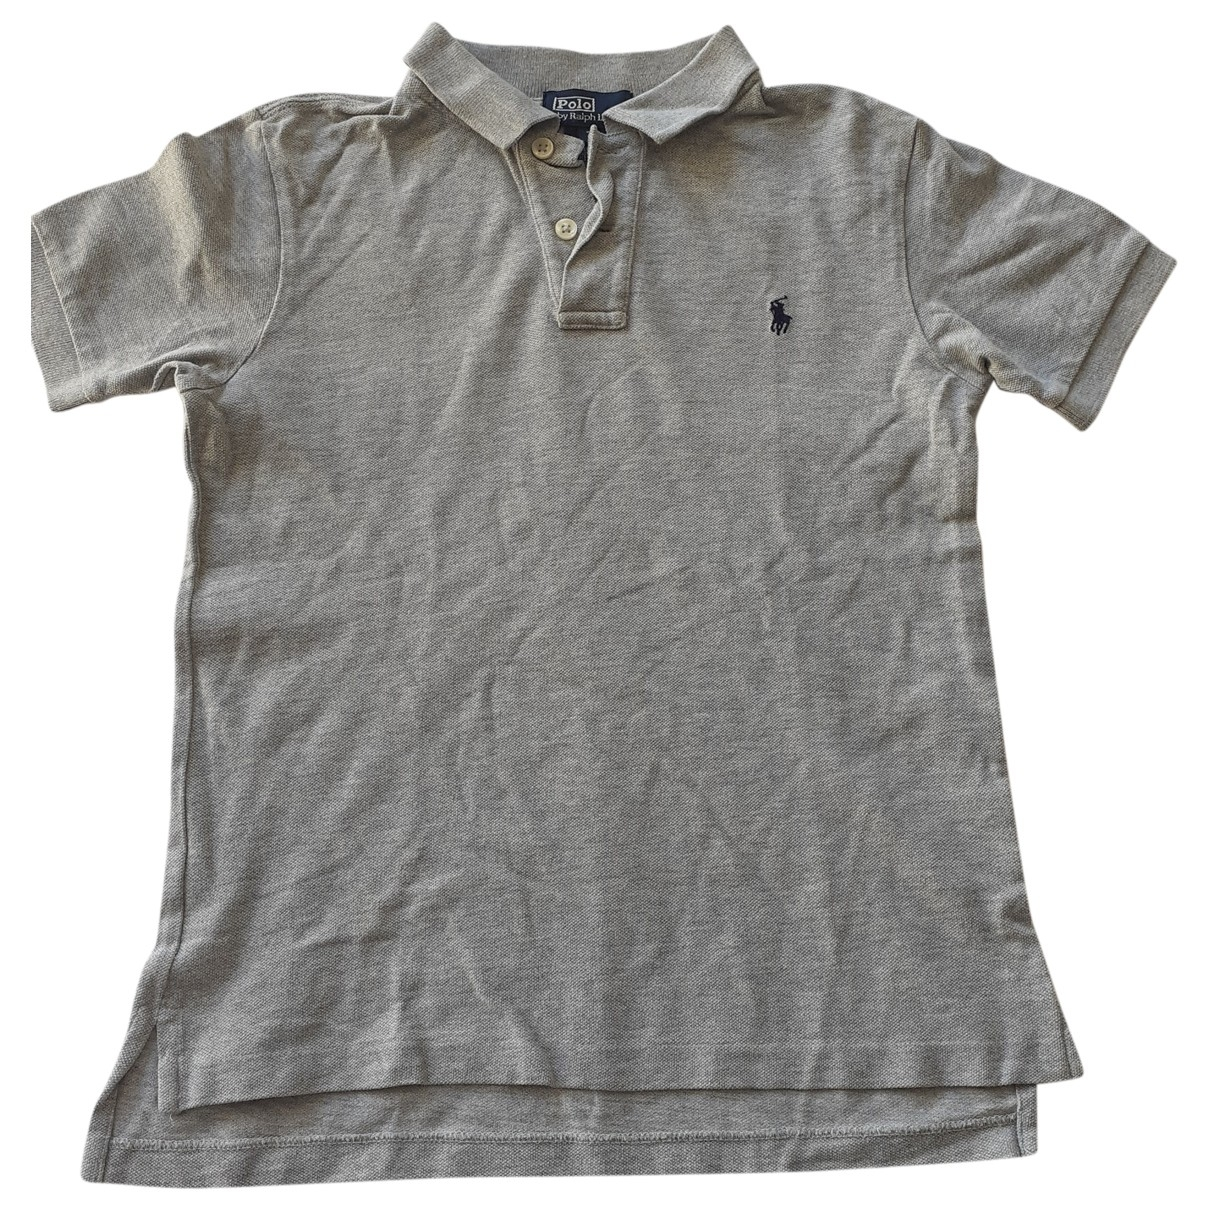 Polo Ralph Lauren \N Grey Cotton  top for Kids 8 years - up to 128cm FR